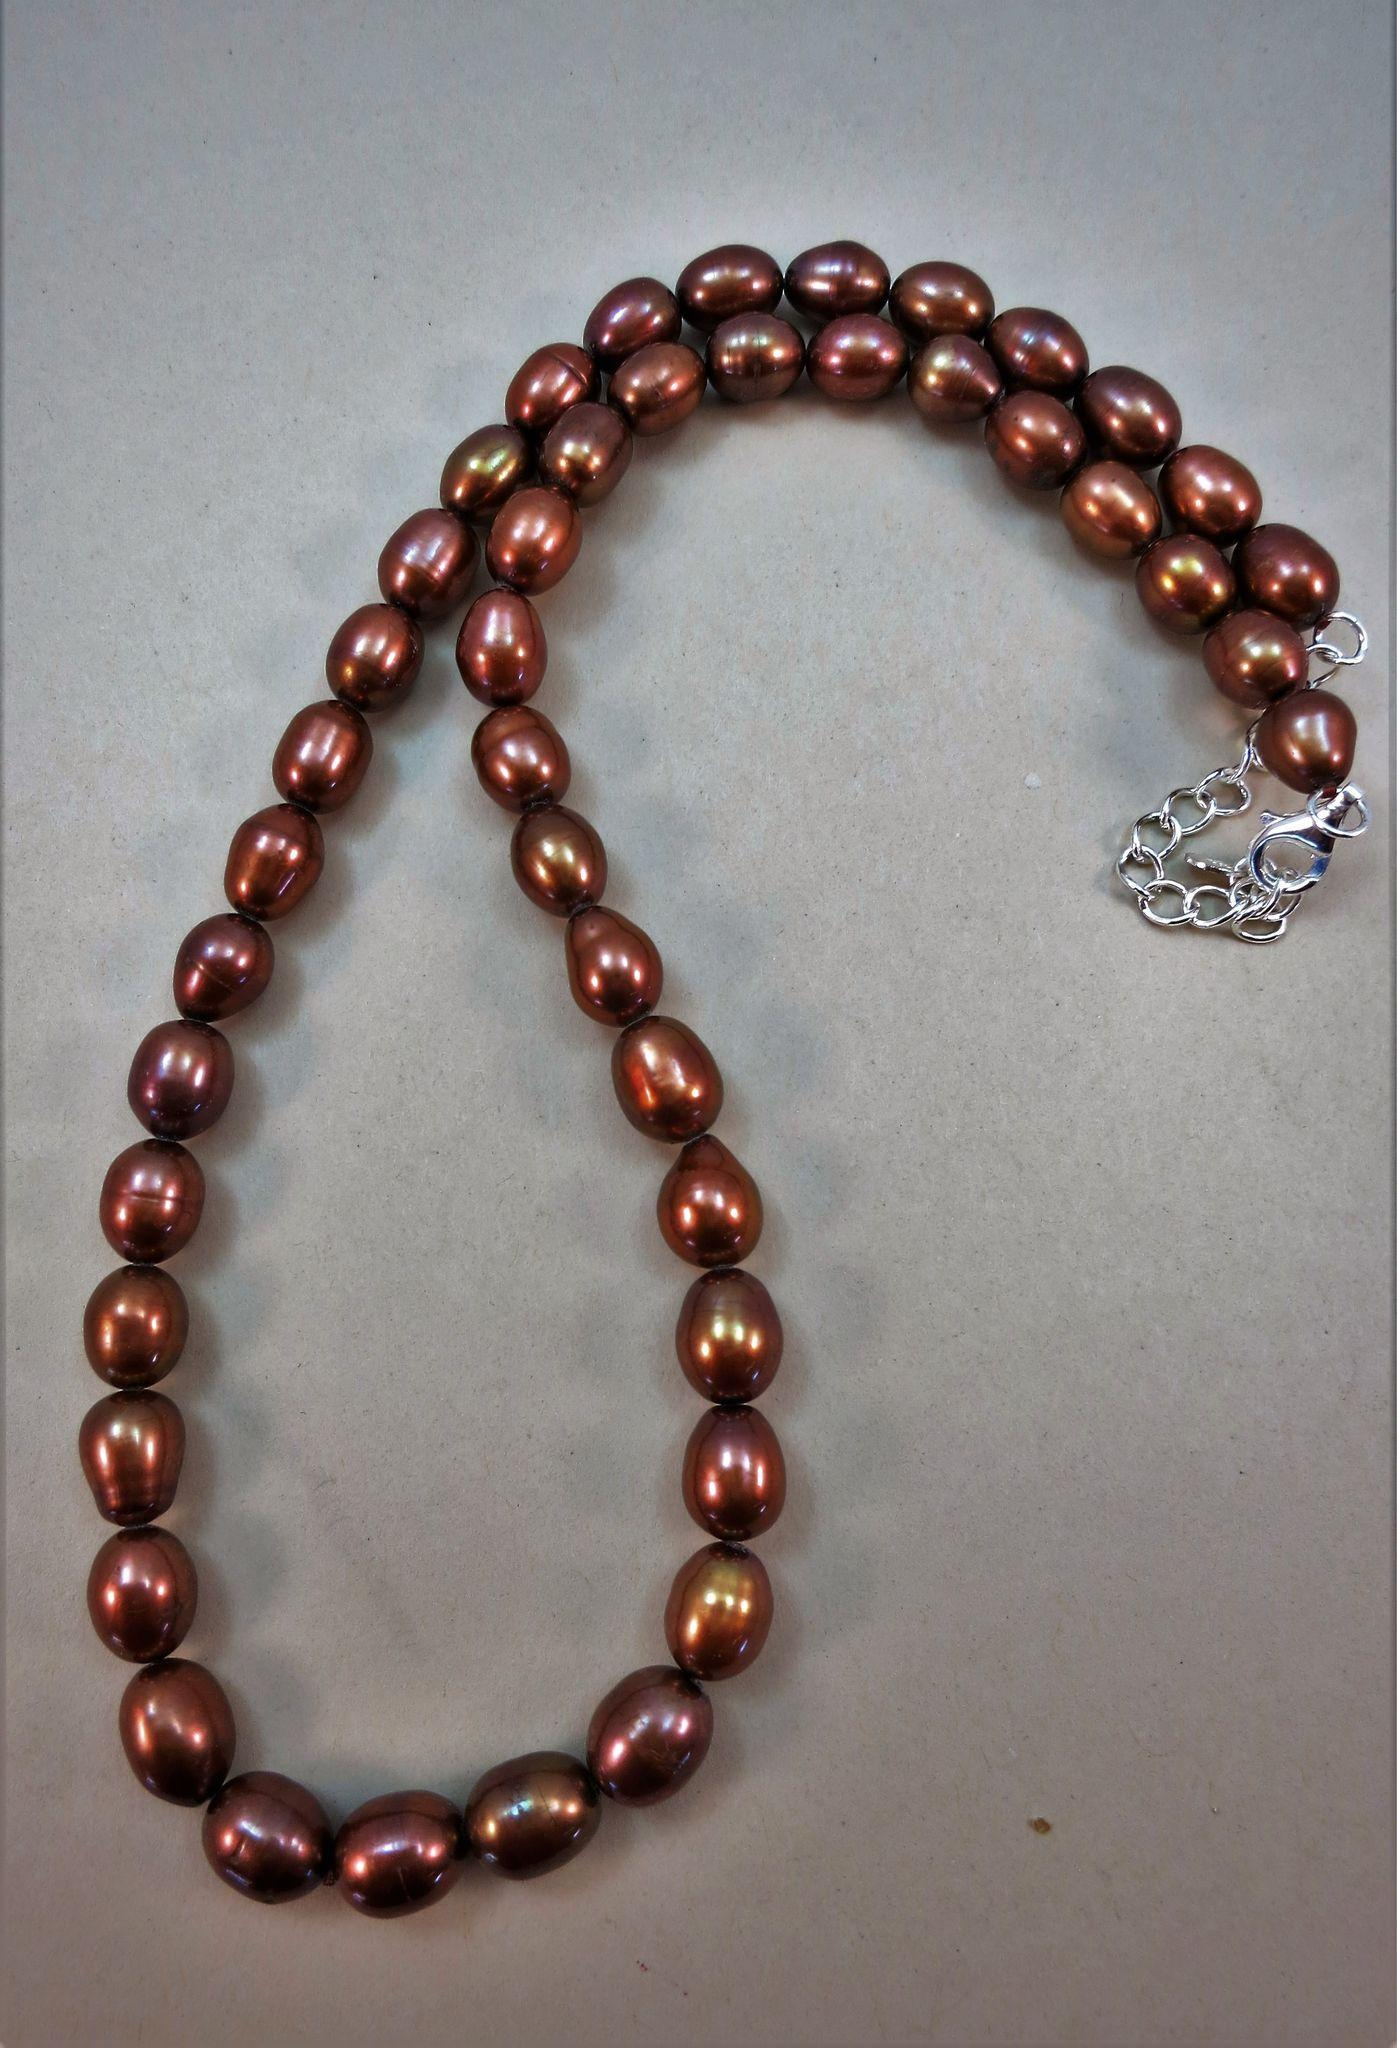 VINTAGE Bronze Fresh-Water Pearl Necklace  18 Inch 2 Inch Extender Chain